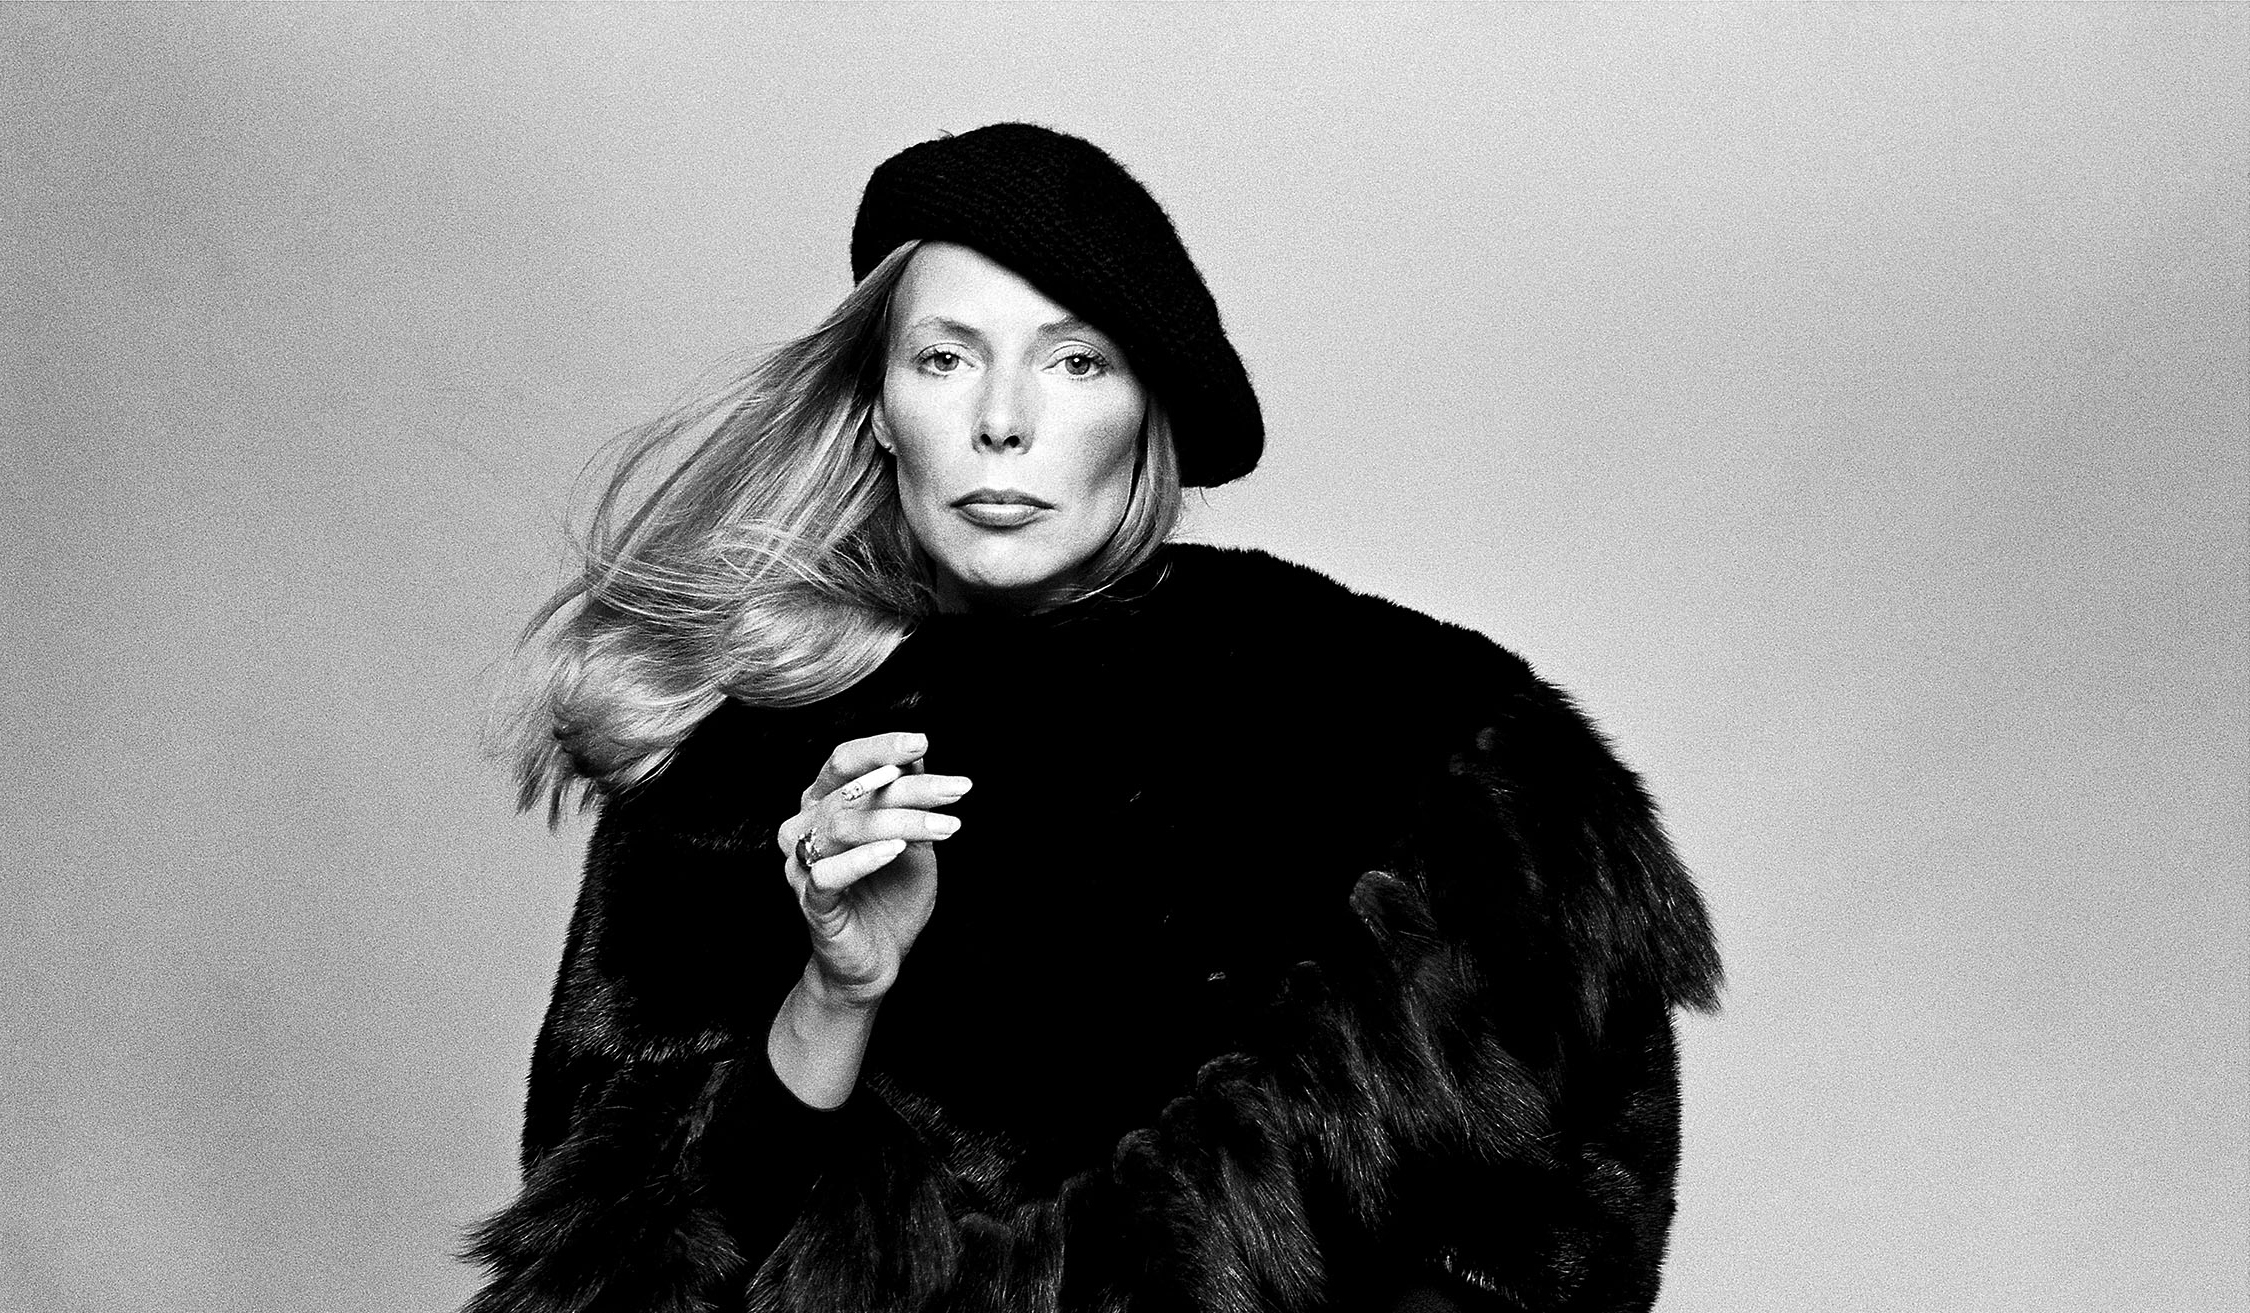 joni mitchell by norman seeff.jpeg